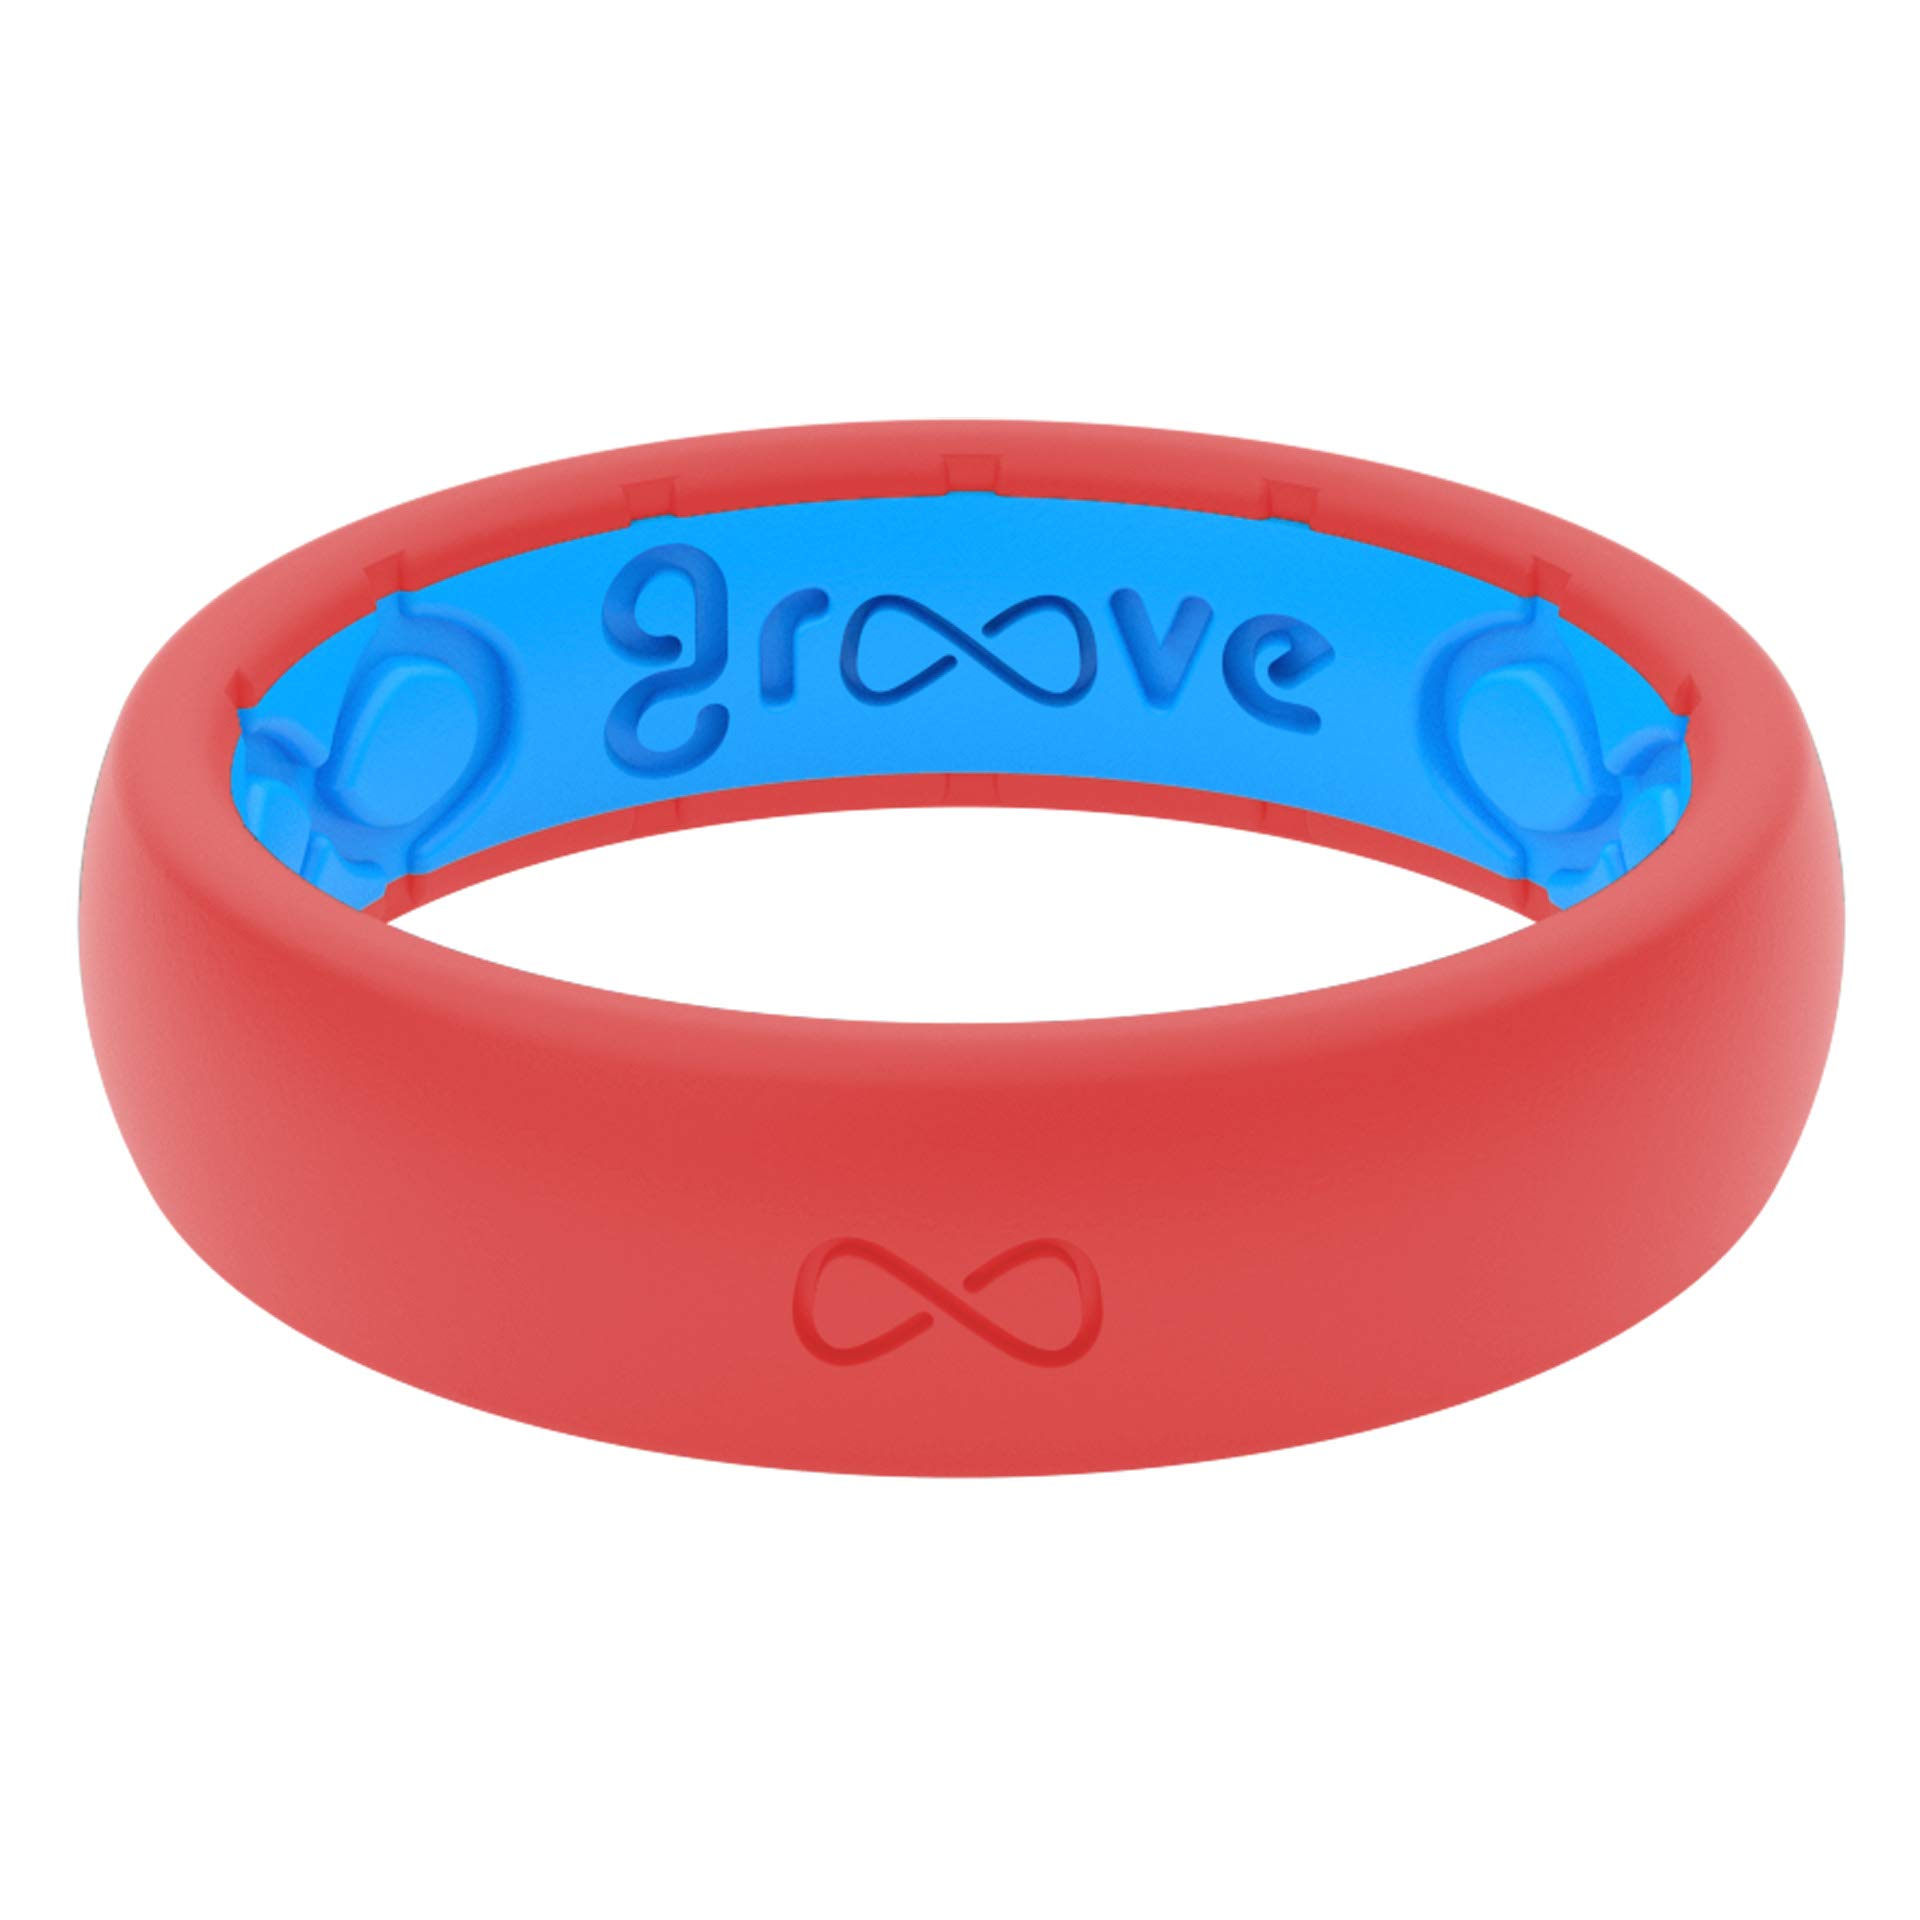 Groove Life - Silicone Ring for Men and for Women Wedding or Engagement Rubber Band with, Breathable Grooves, Comfort Fit, and Durability - Thin Solid Raspberry Red Size 4